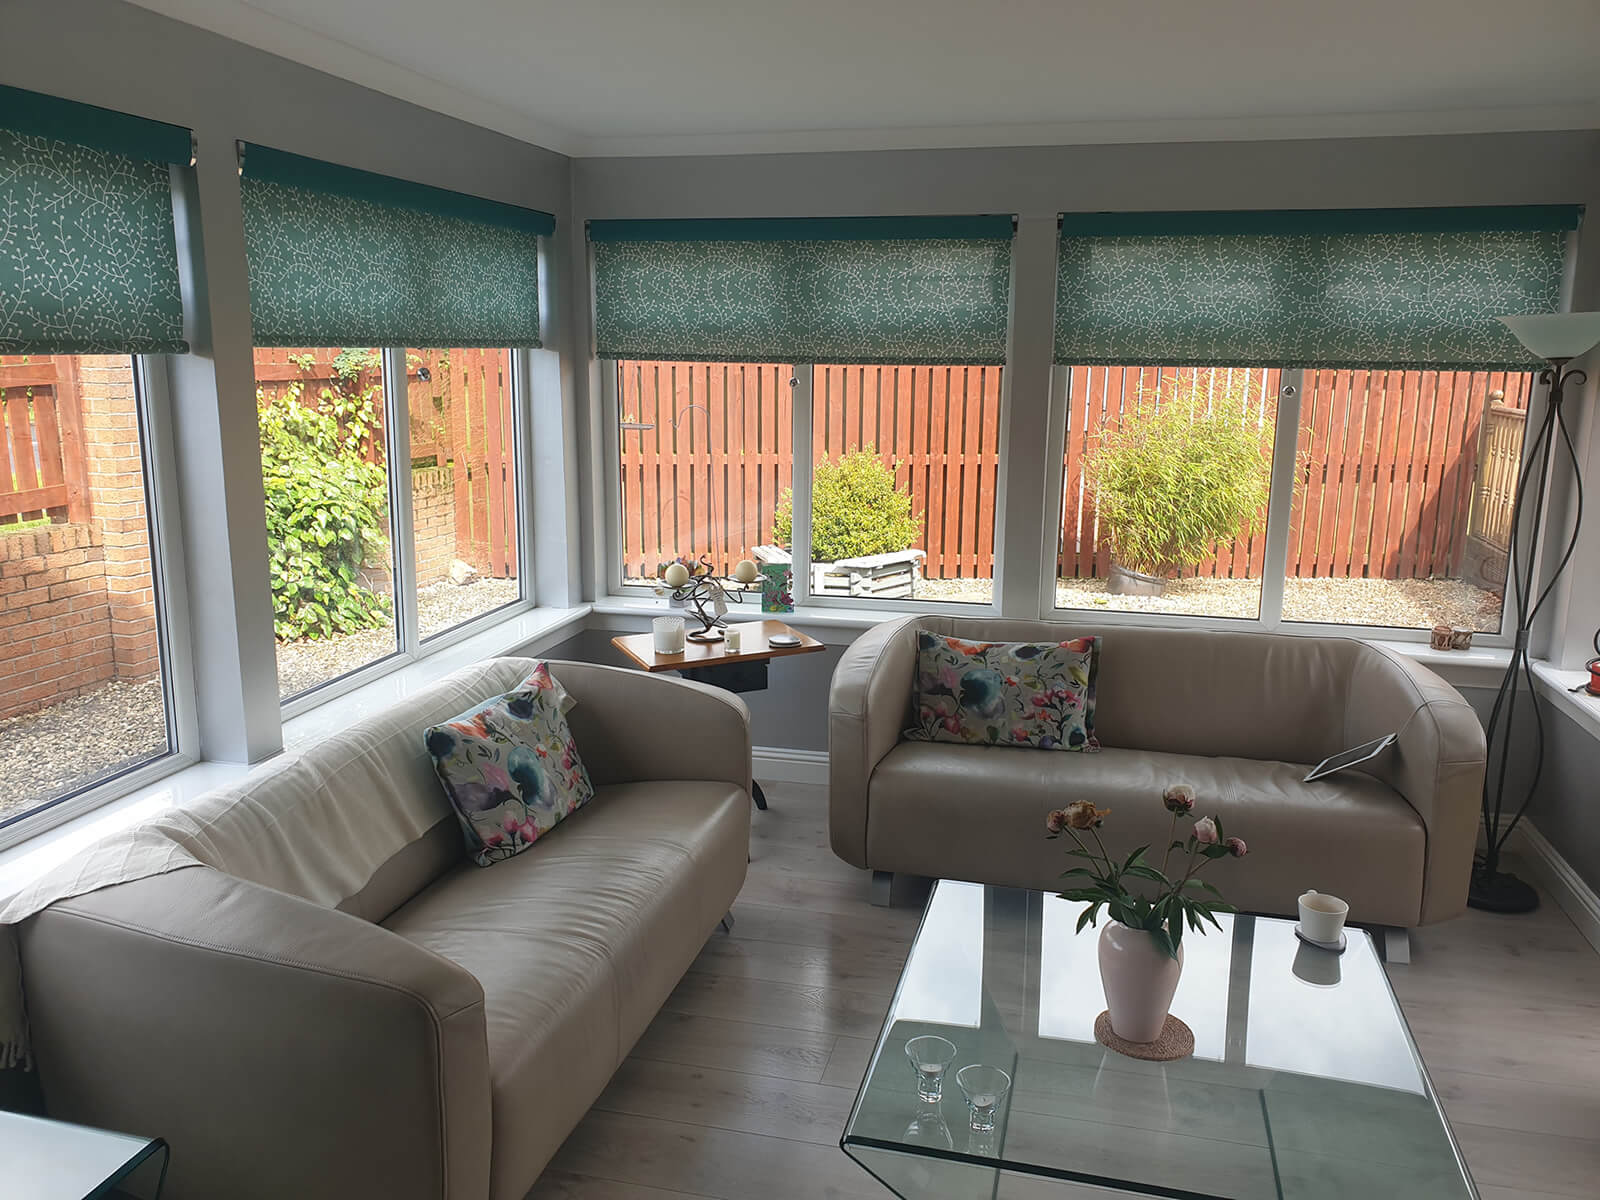 Bright room extension with lots of windows, green roller blinds, cream leather sofa and glass coffee table